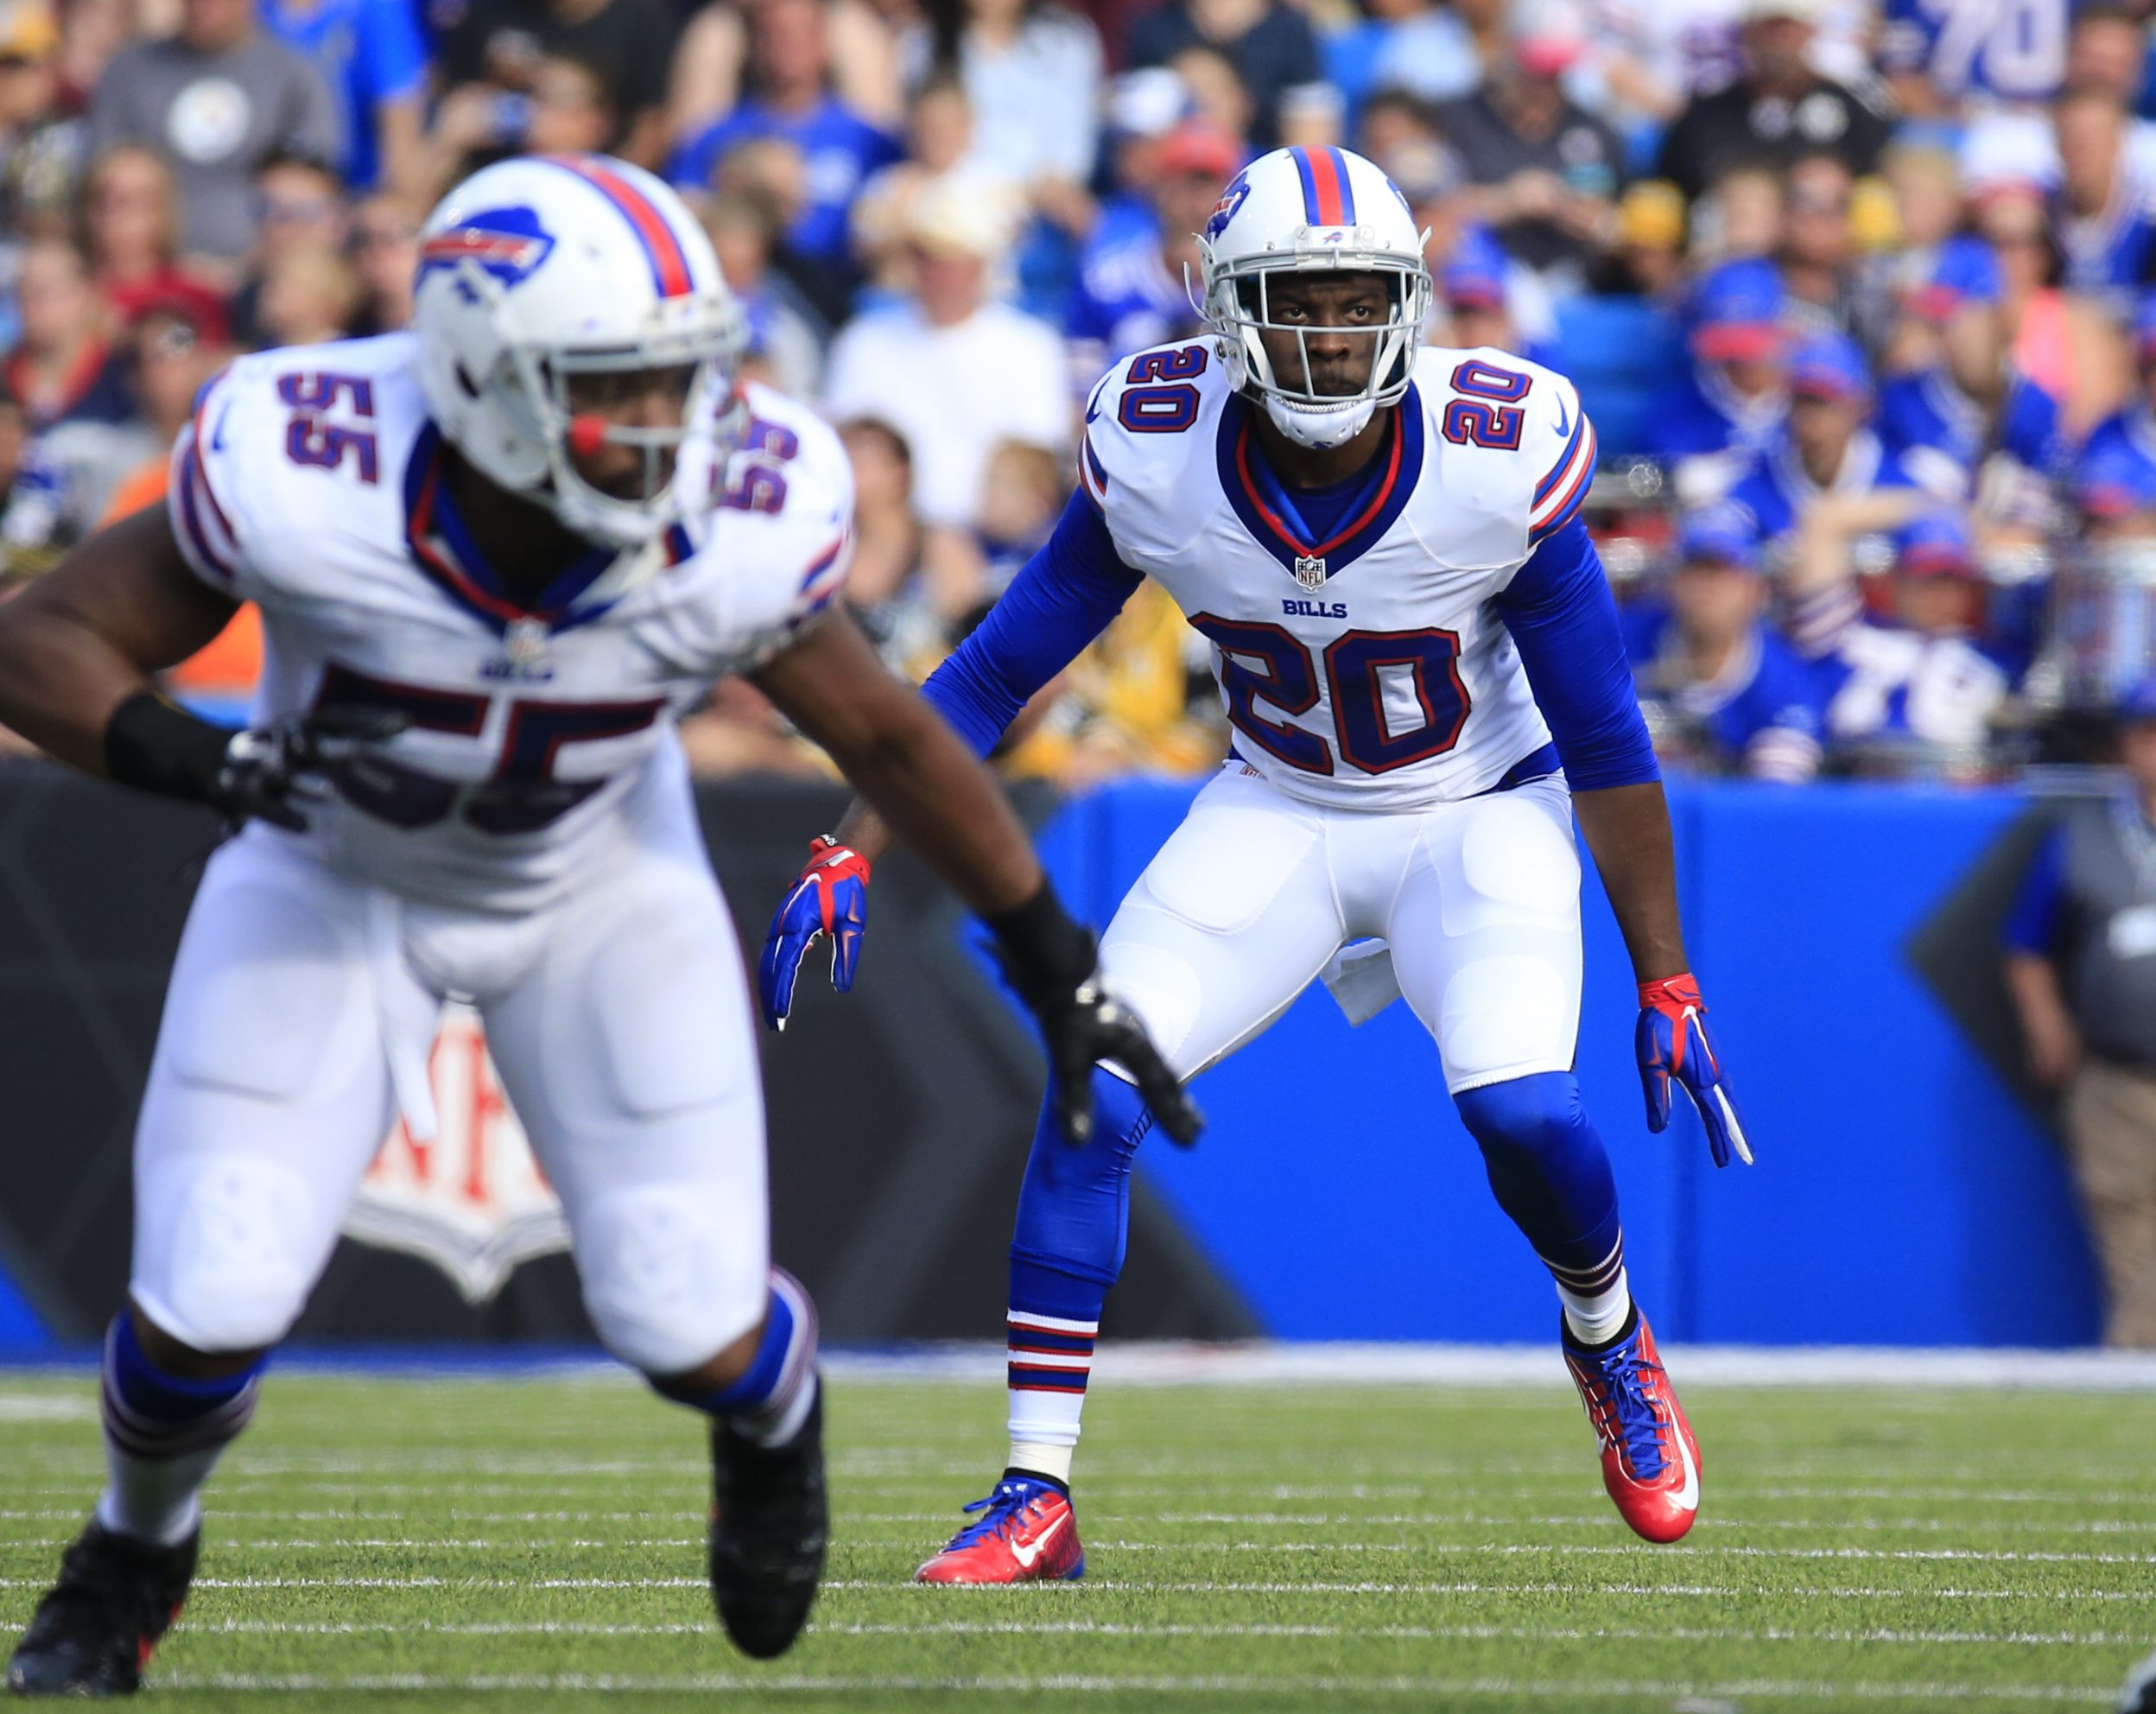 Buffalo Bills Corey Graham  during first half action against the Pittsburgh Steelers at Ralph WIlson Stadium on Saturday, Aug. 29, 2015.  (Harry Scull Jr./Buffalo News)